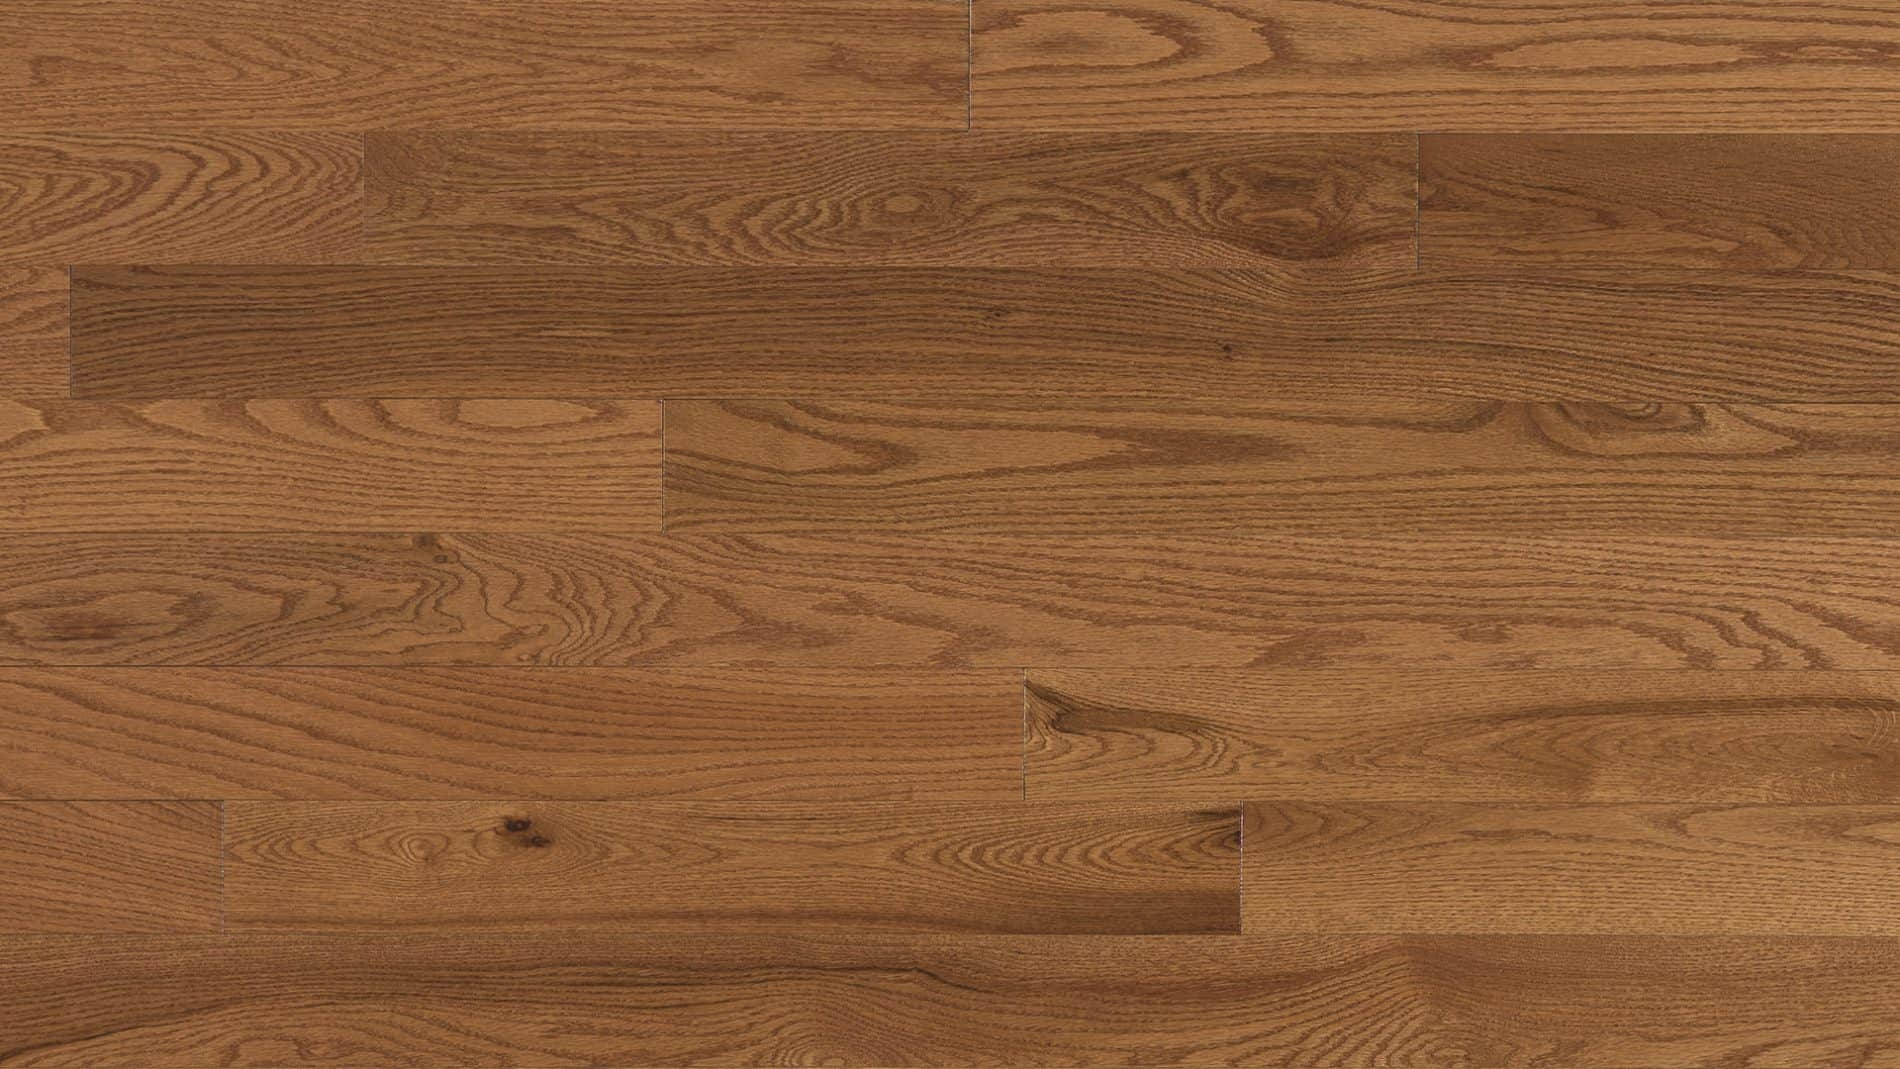 Hardwood floor | Red oak apricot